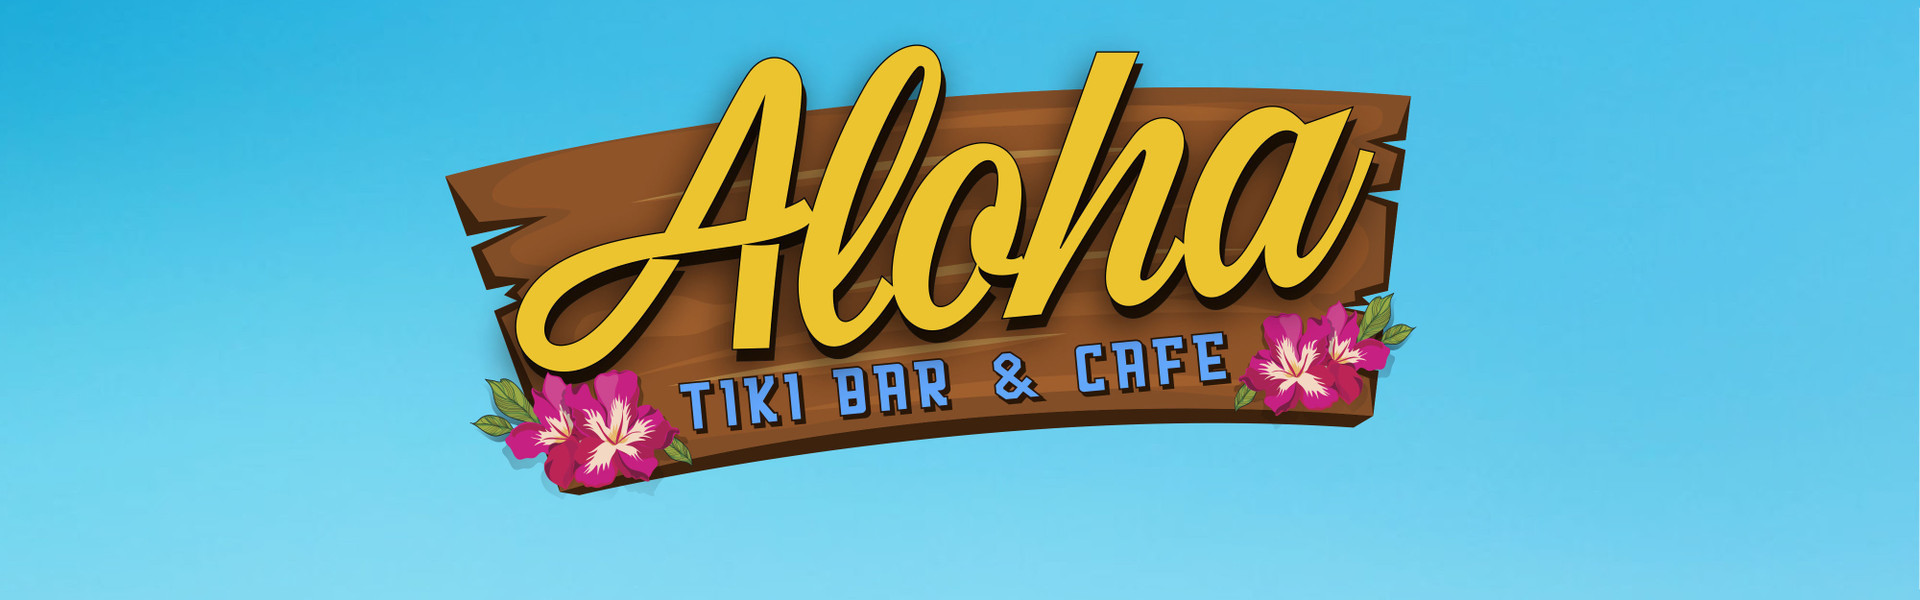 Aloha Tiki Bar at Westgate Cocoa Beach Pier near our Cocoa Beach Hotel | Aloha Tiki Bar